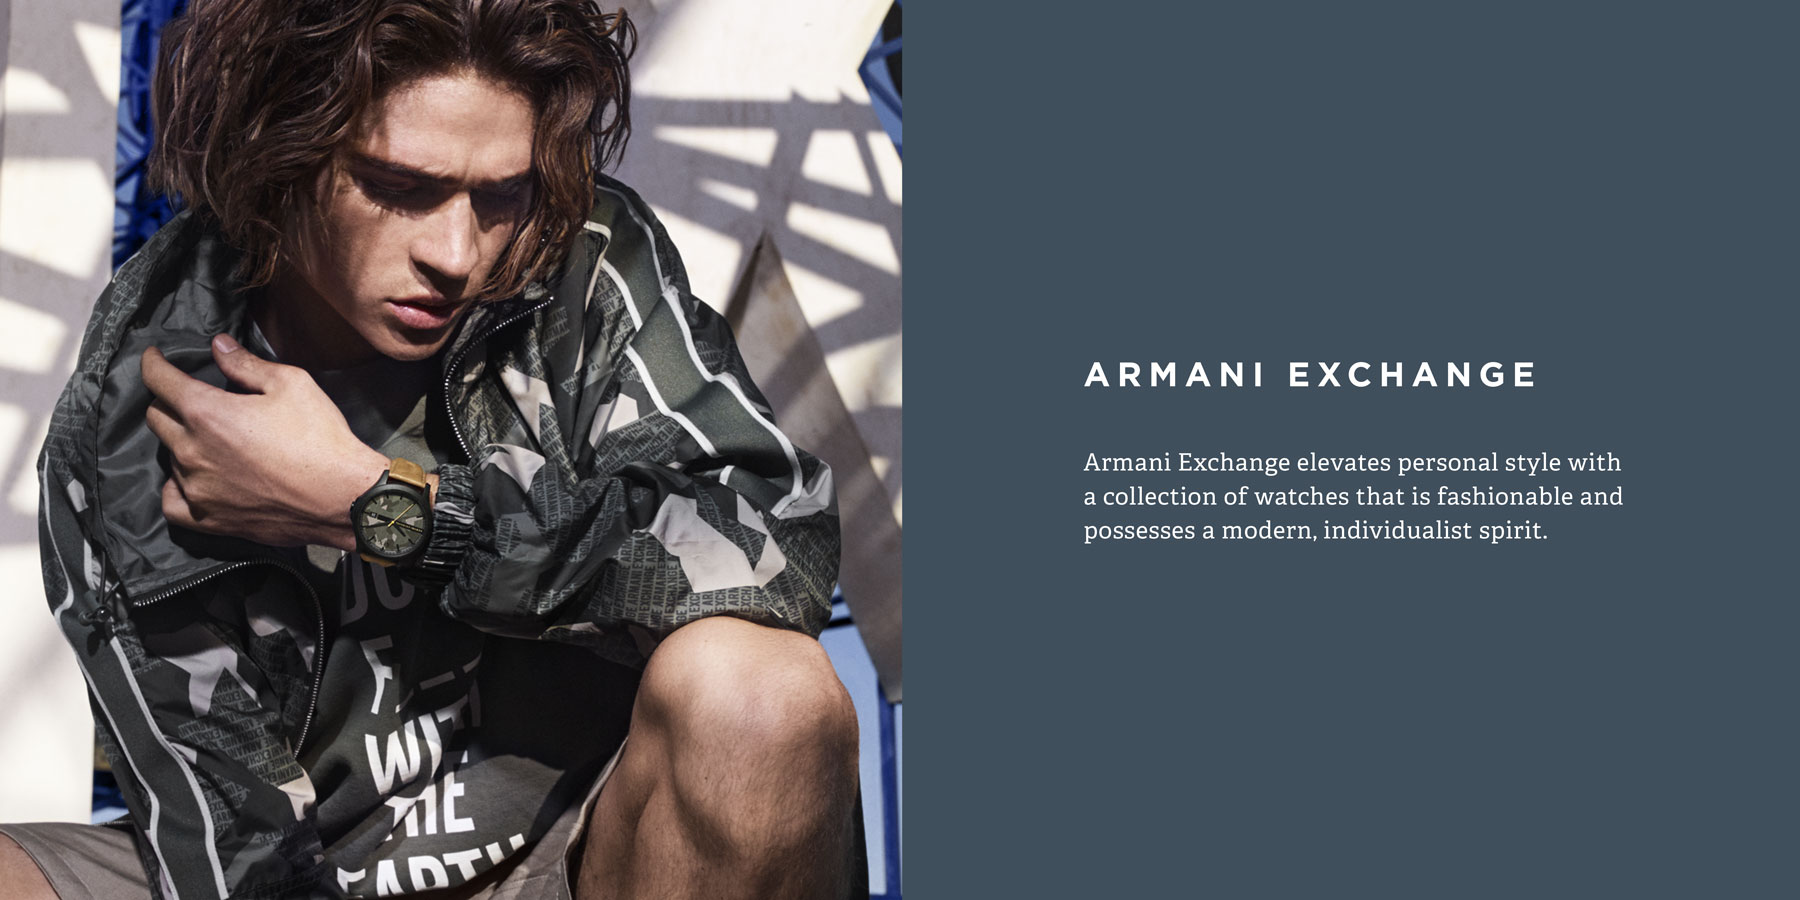 Armani Exchange elevates personal style with a collection of watches that is fashionable and possesses a modern, individualist spirit.